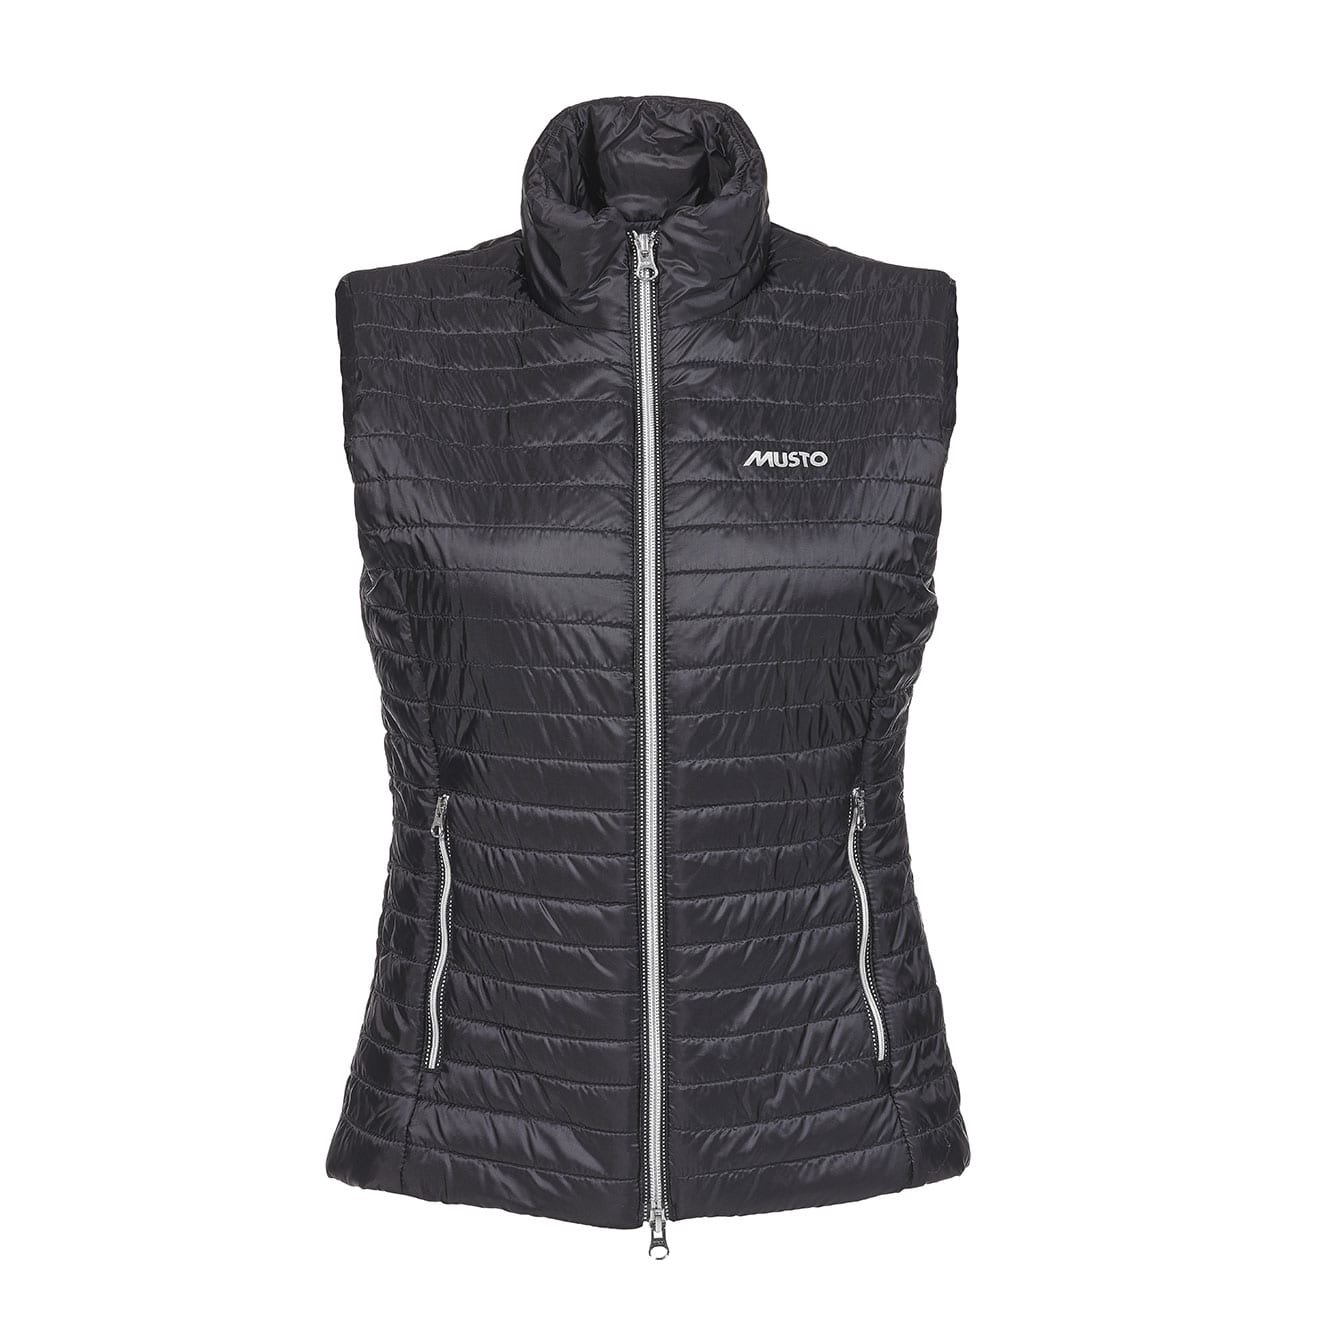 The Crescent Womens Down Gilet is a simple, but warm layer for the winter season. Made in water-resistant fabric with down/feather filling and zipped pockets for small belongings, when you take out your dog or go for a walk.